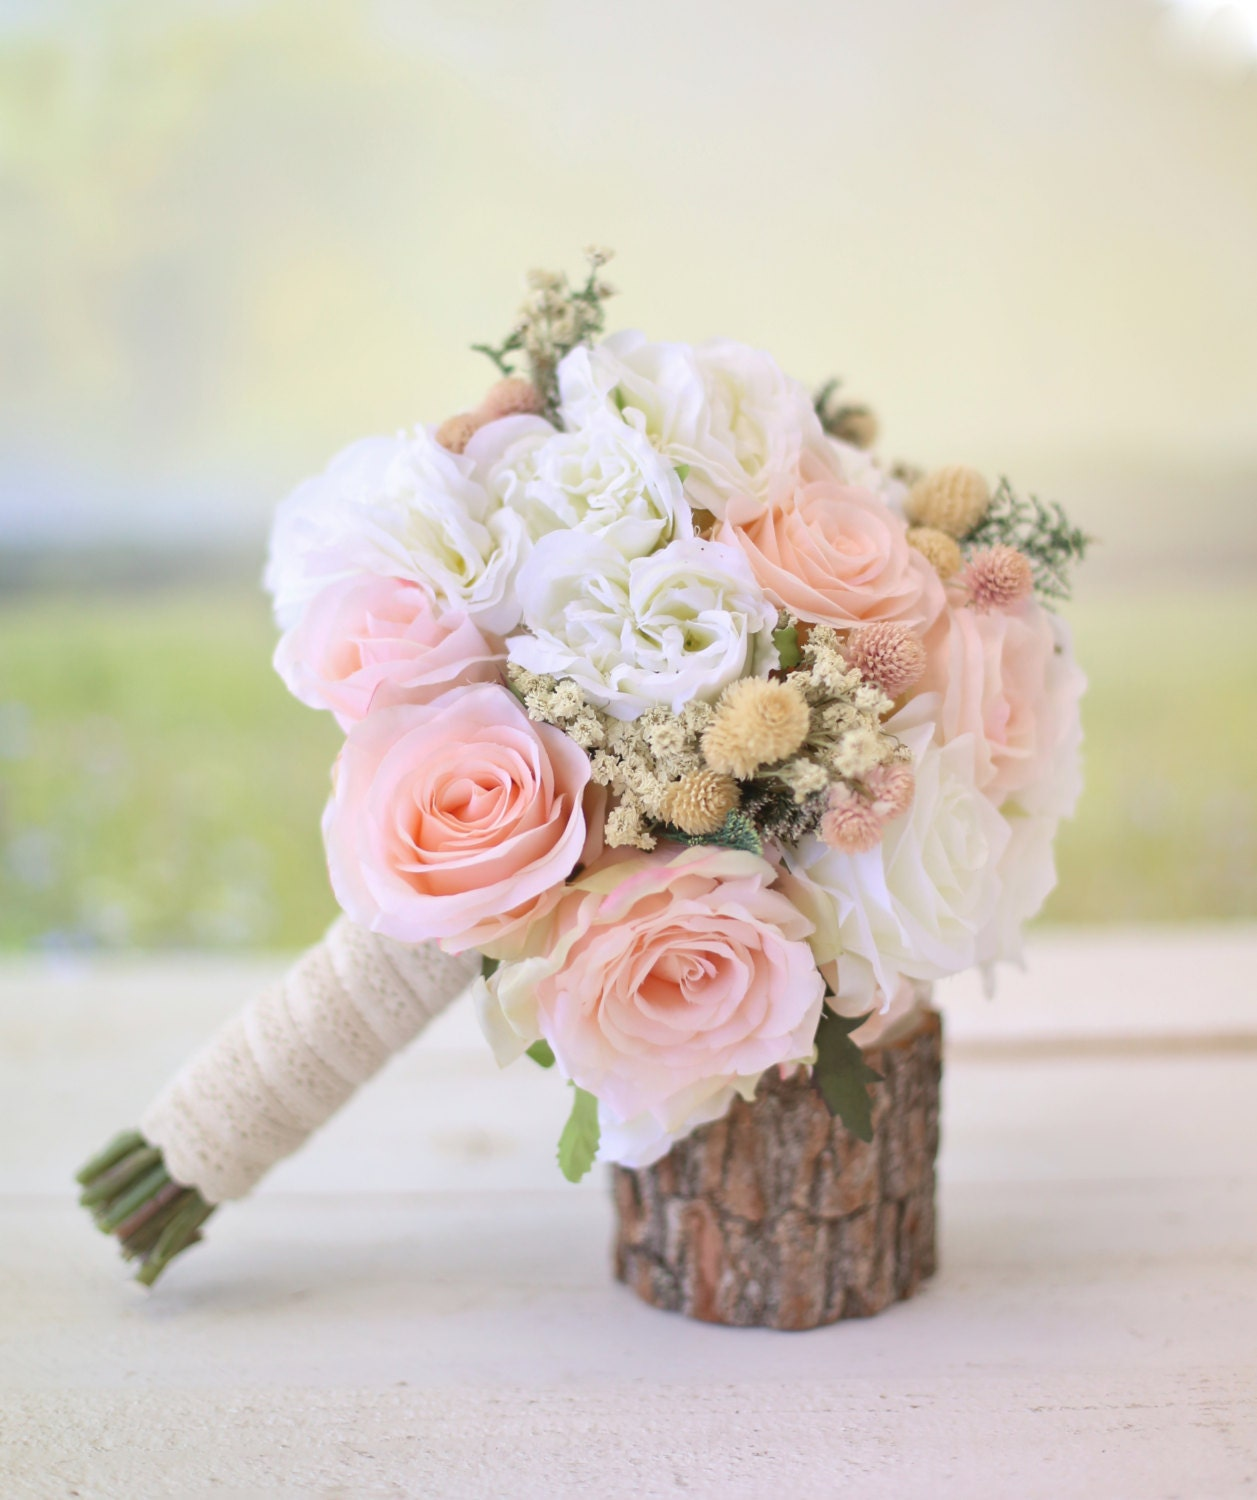 Pink Wedding Flowers: Silk Bridal Bouquet Wildflowers Pink Roses Baby's By